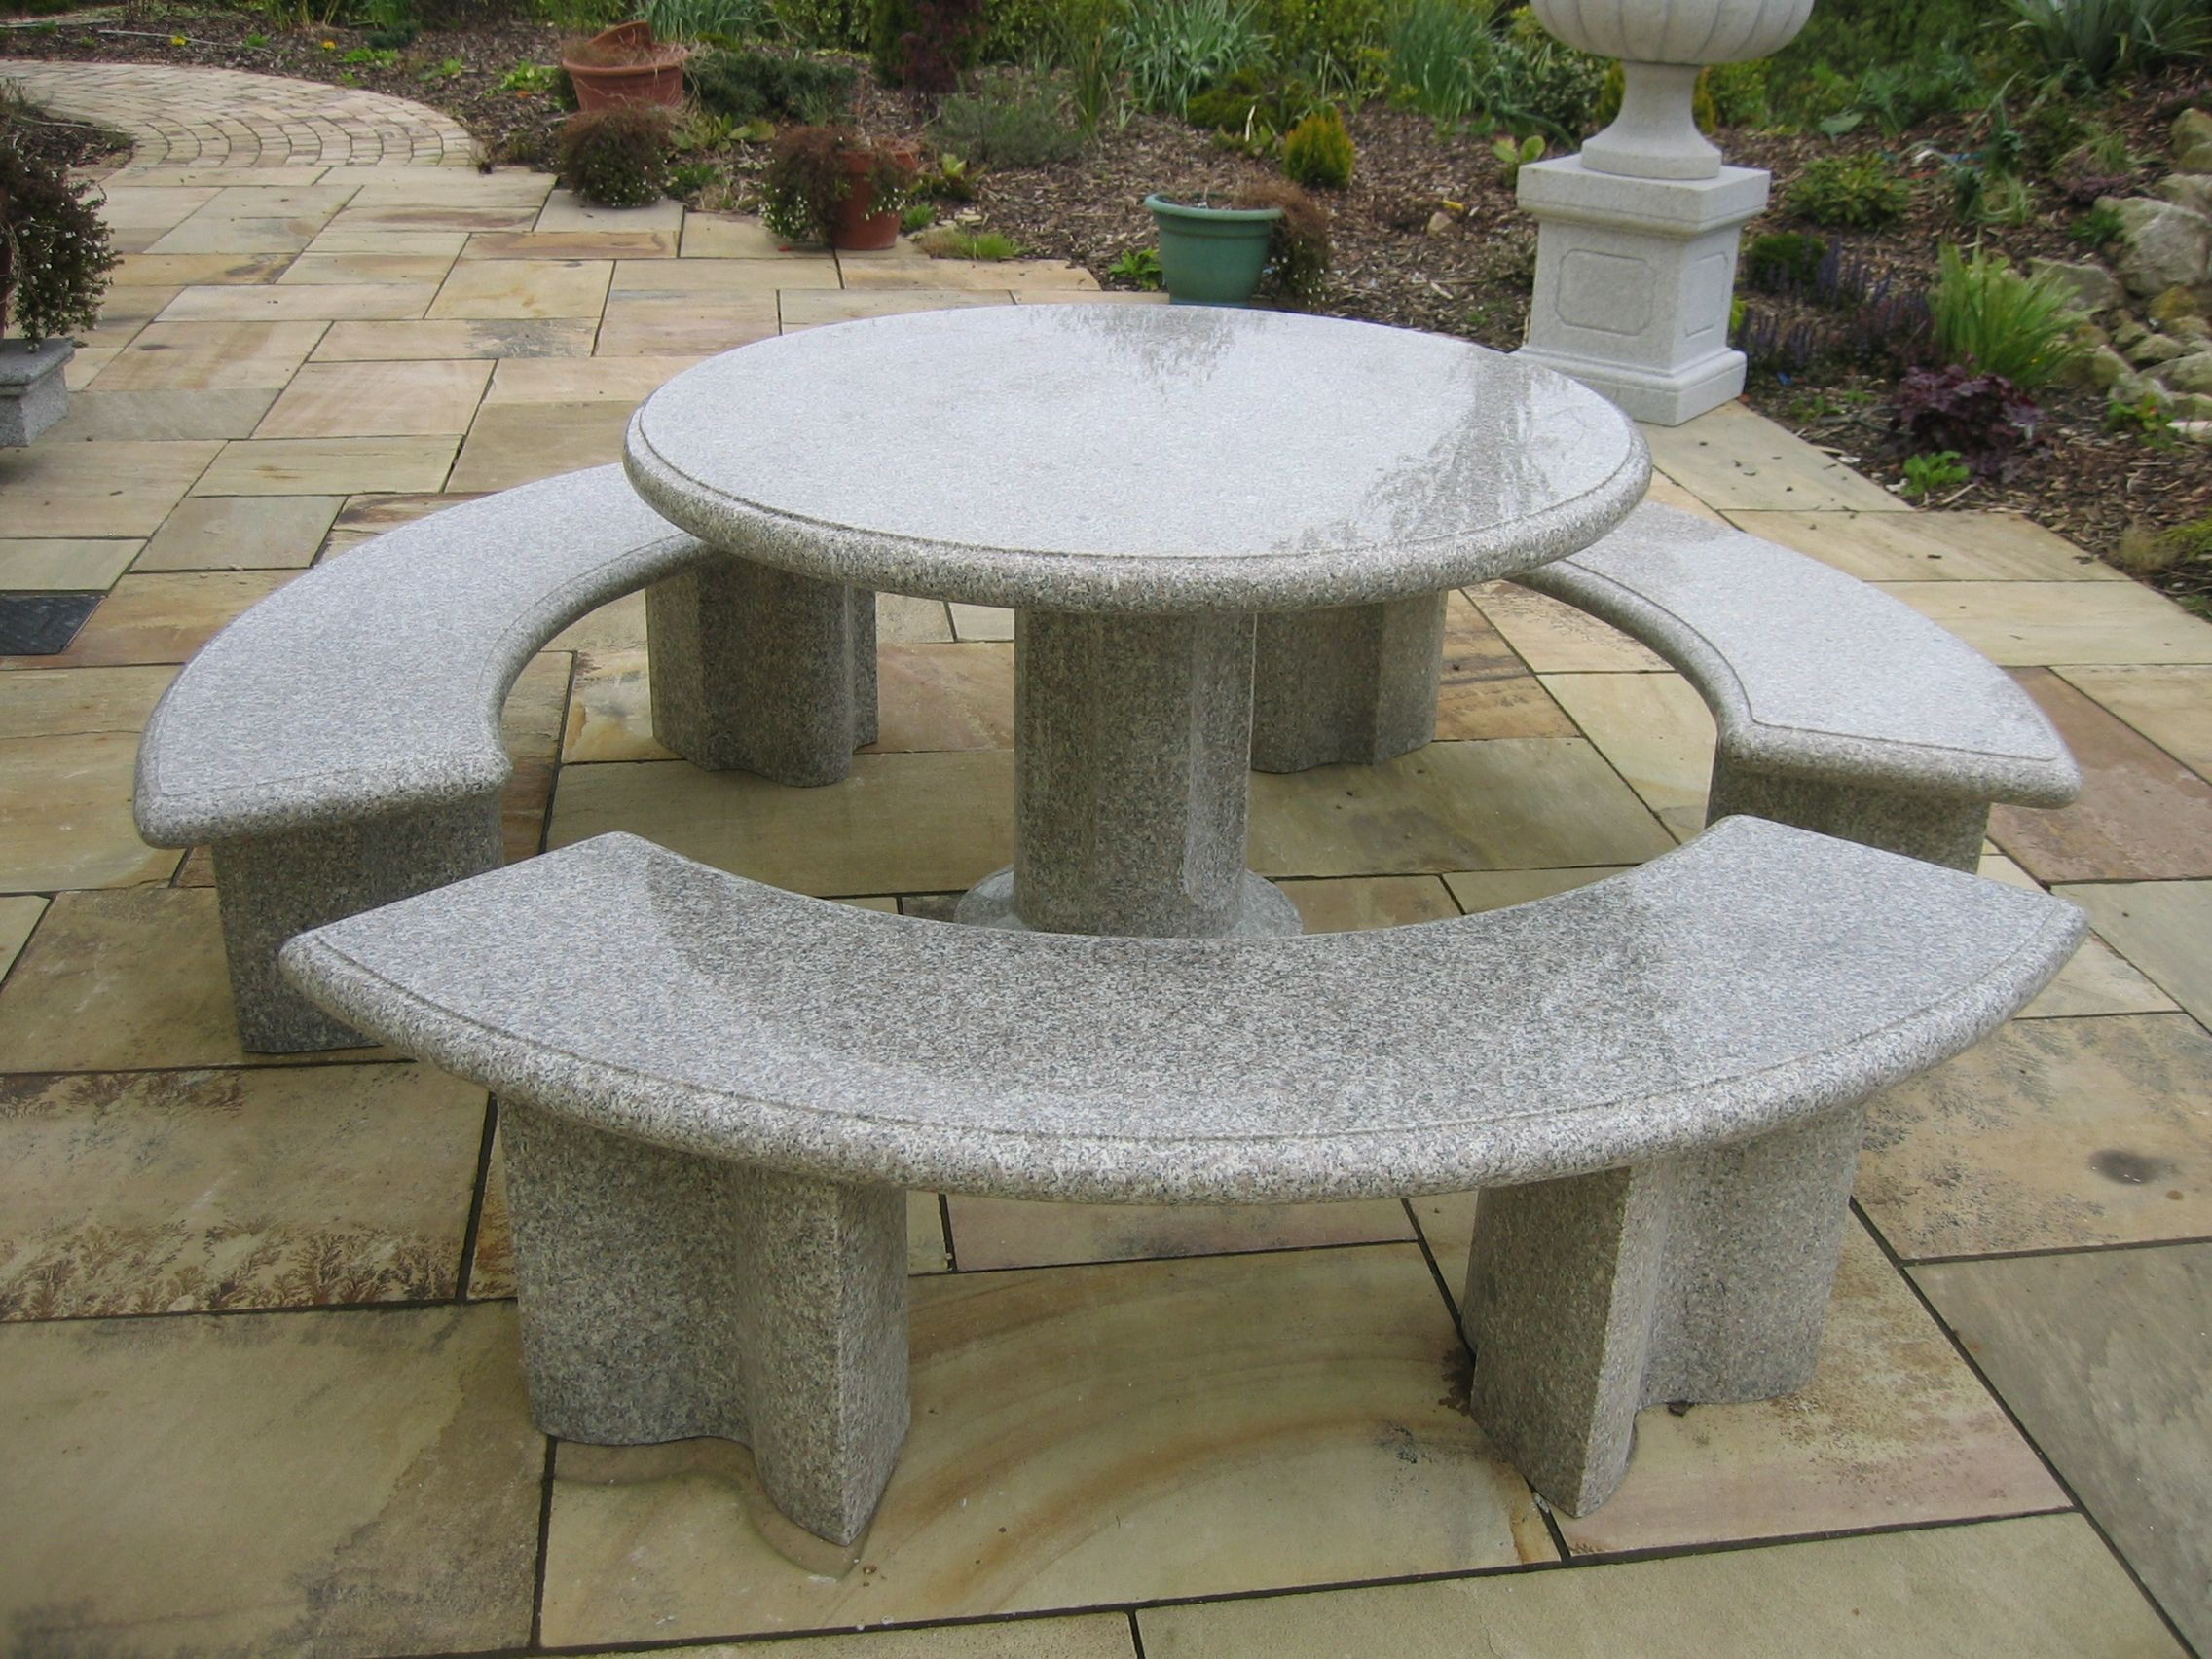 This beautiful polished stone round table and chairs a perfect